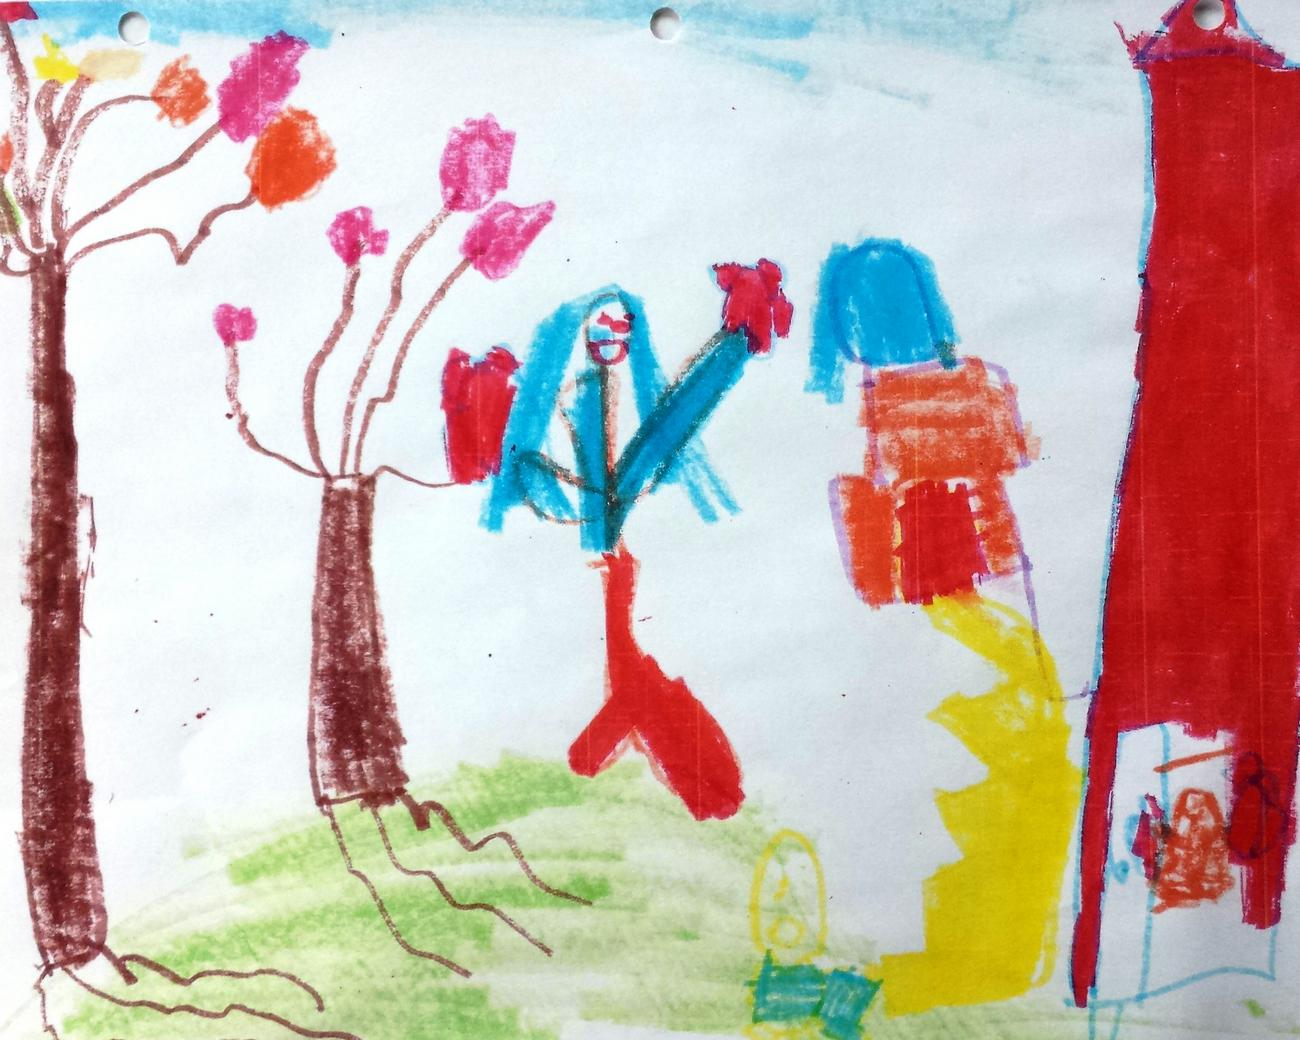 Child's drawing of a person